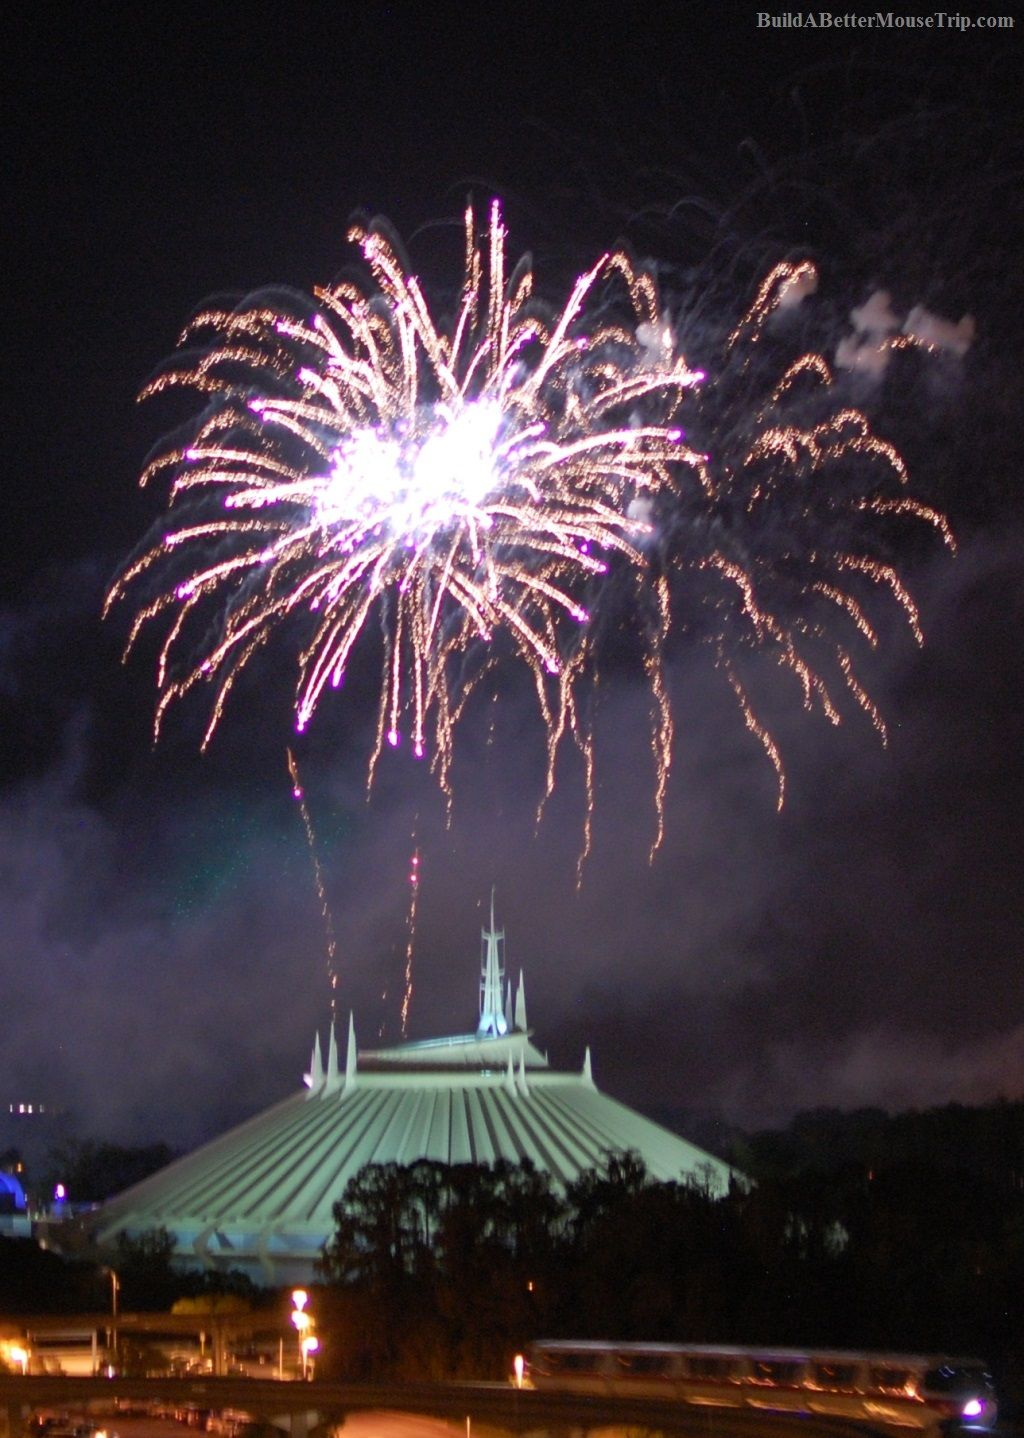 Fireworks over Space Mountain in the Magic Kingdom at Disney World.